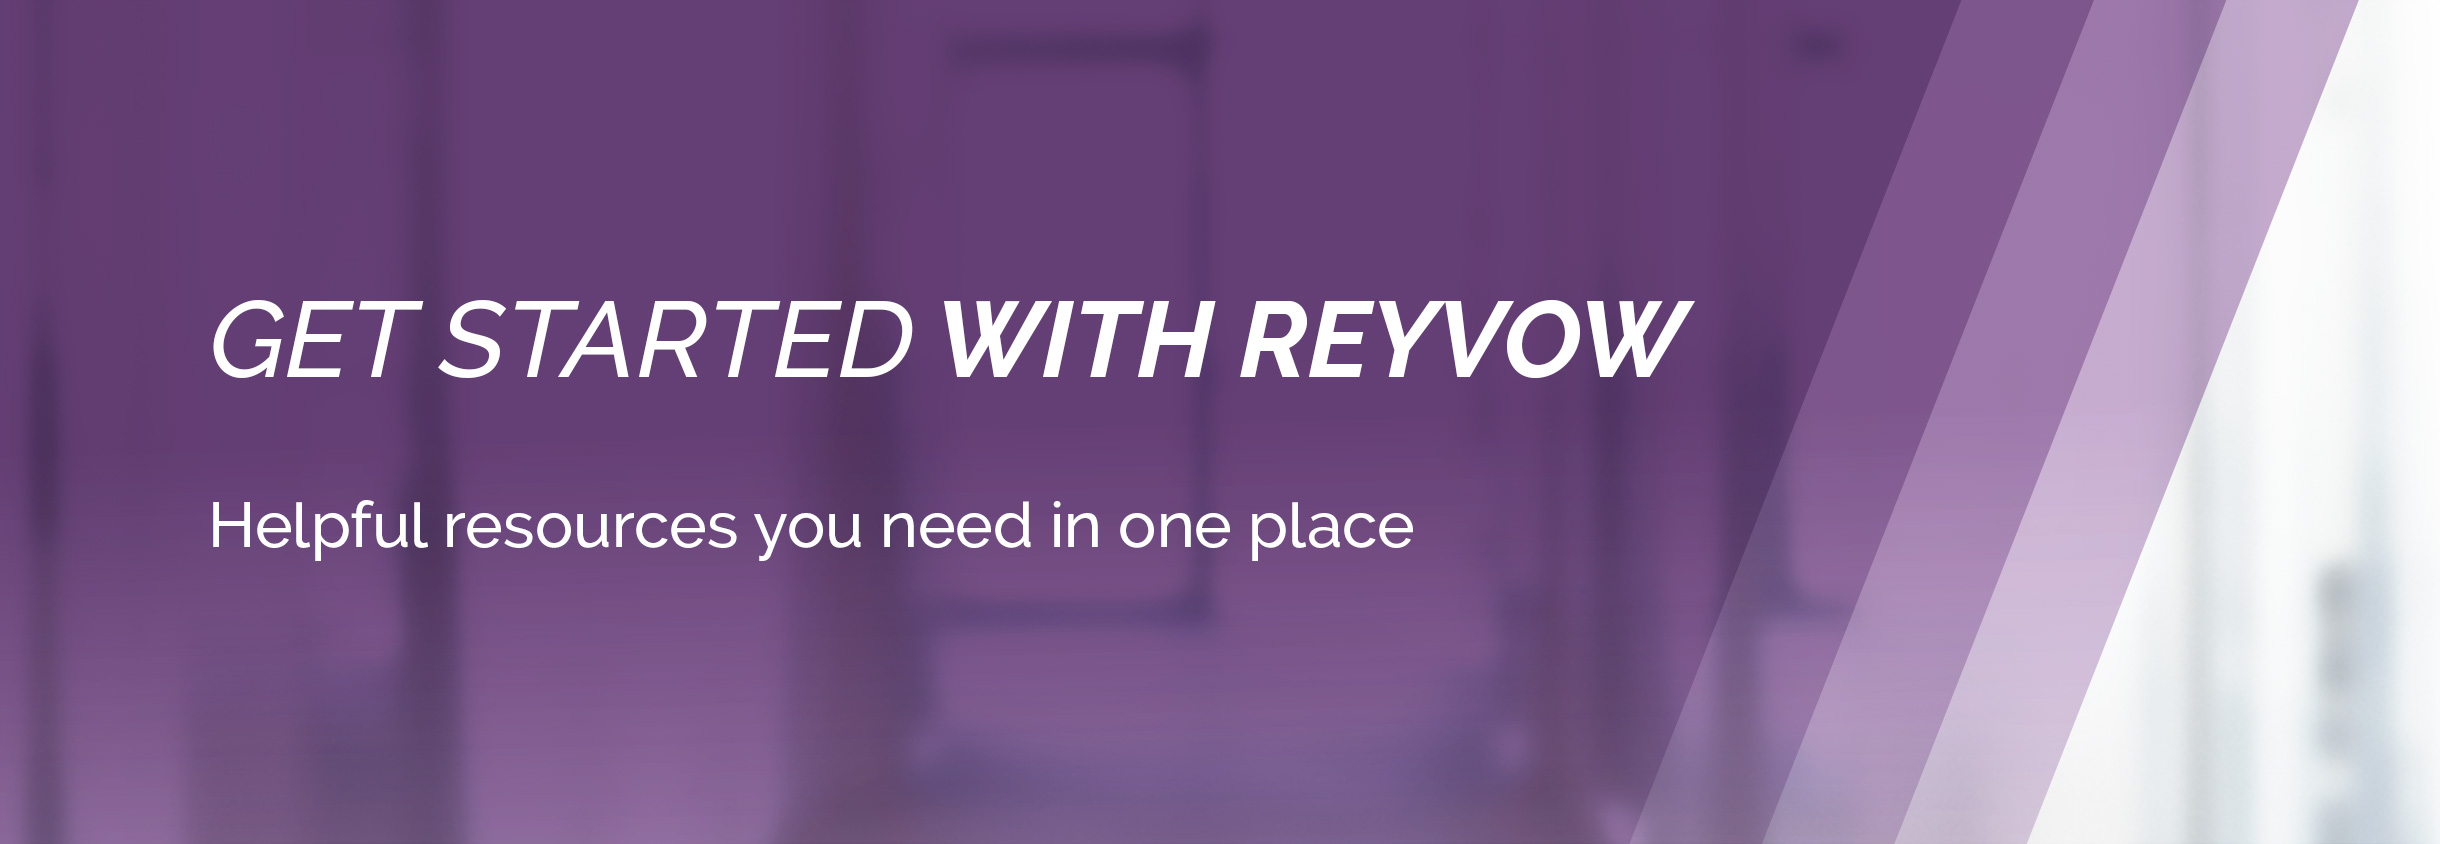 Get started with REYVOW. Helpful resources you need in one place.